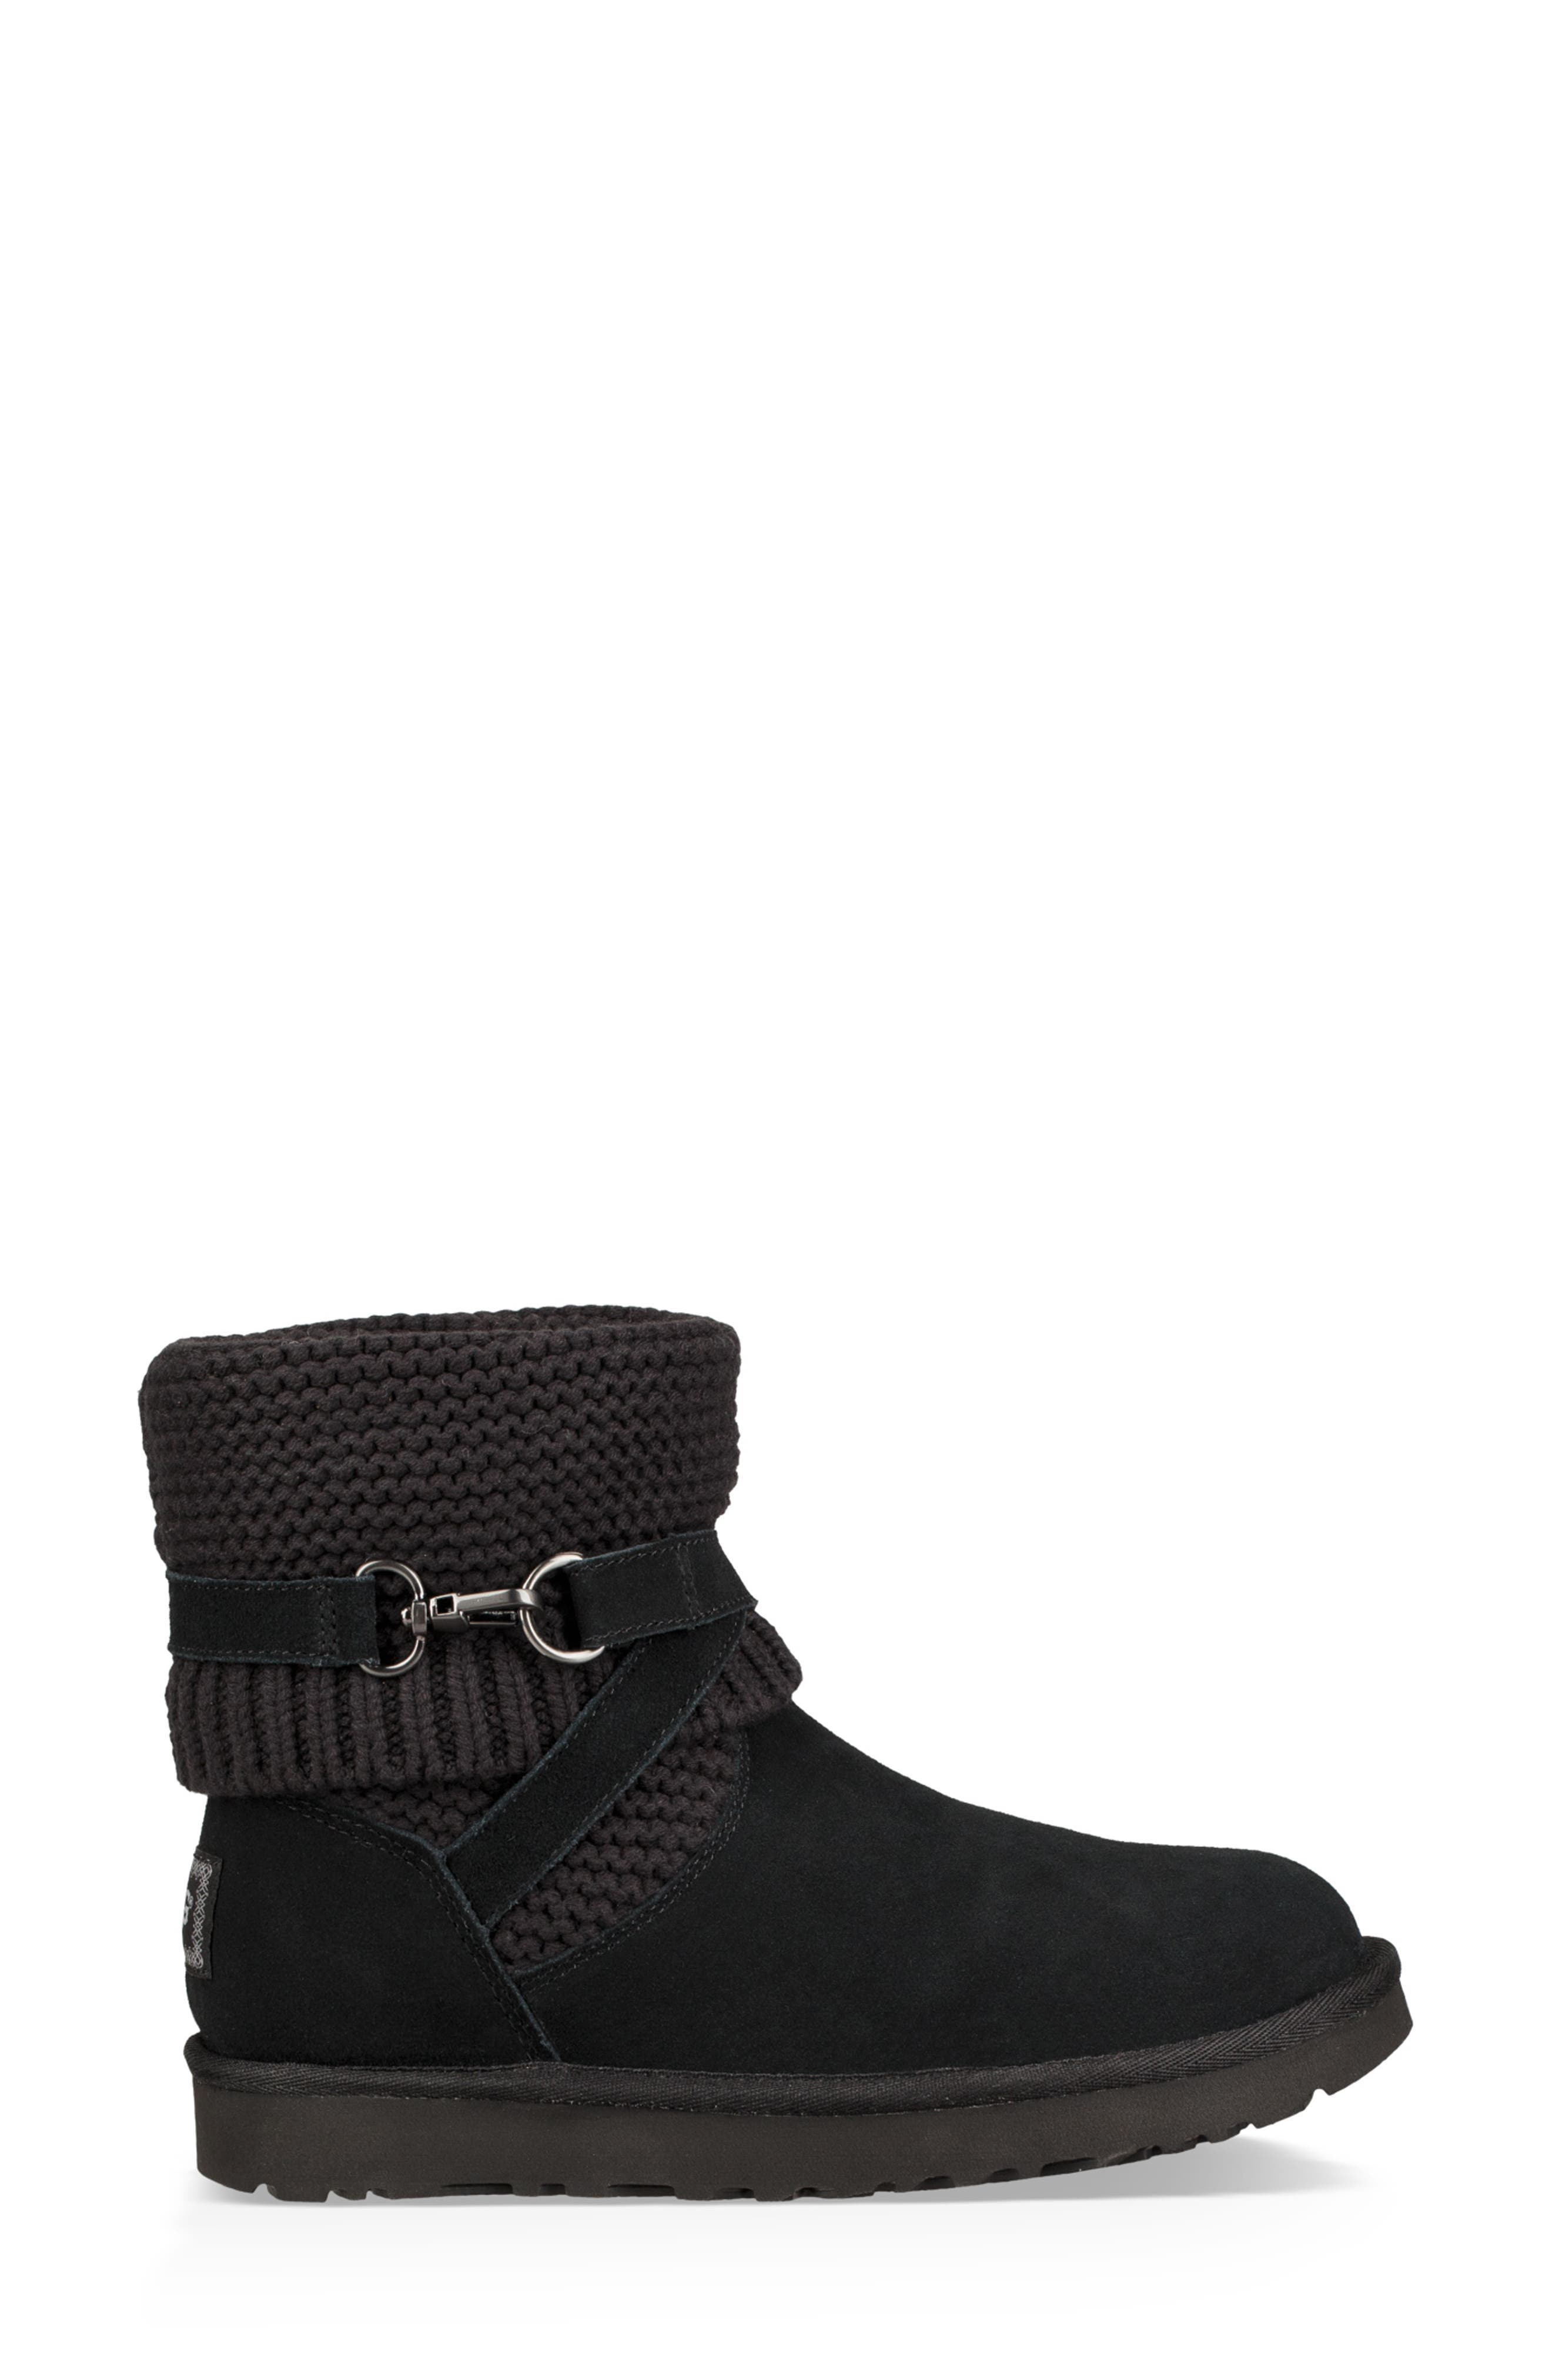 UGGpure<sup>™</sup> Strappy Purl Knit Bootie,                             Alternate thumbnail 8, color,                             BLACK SUEDE